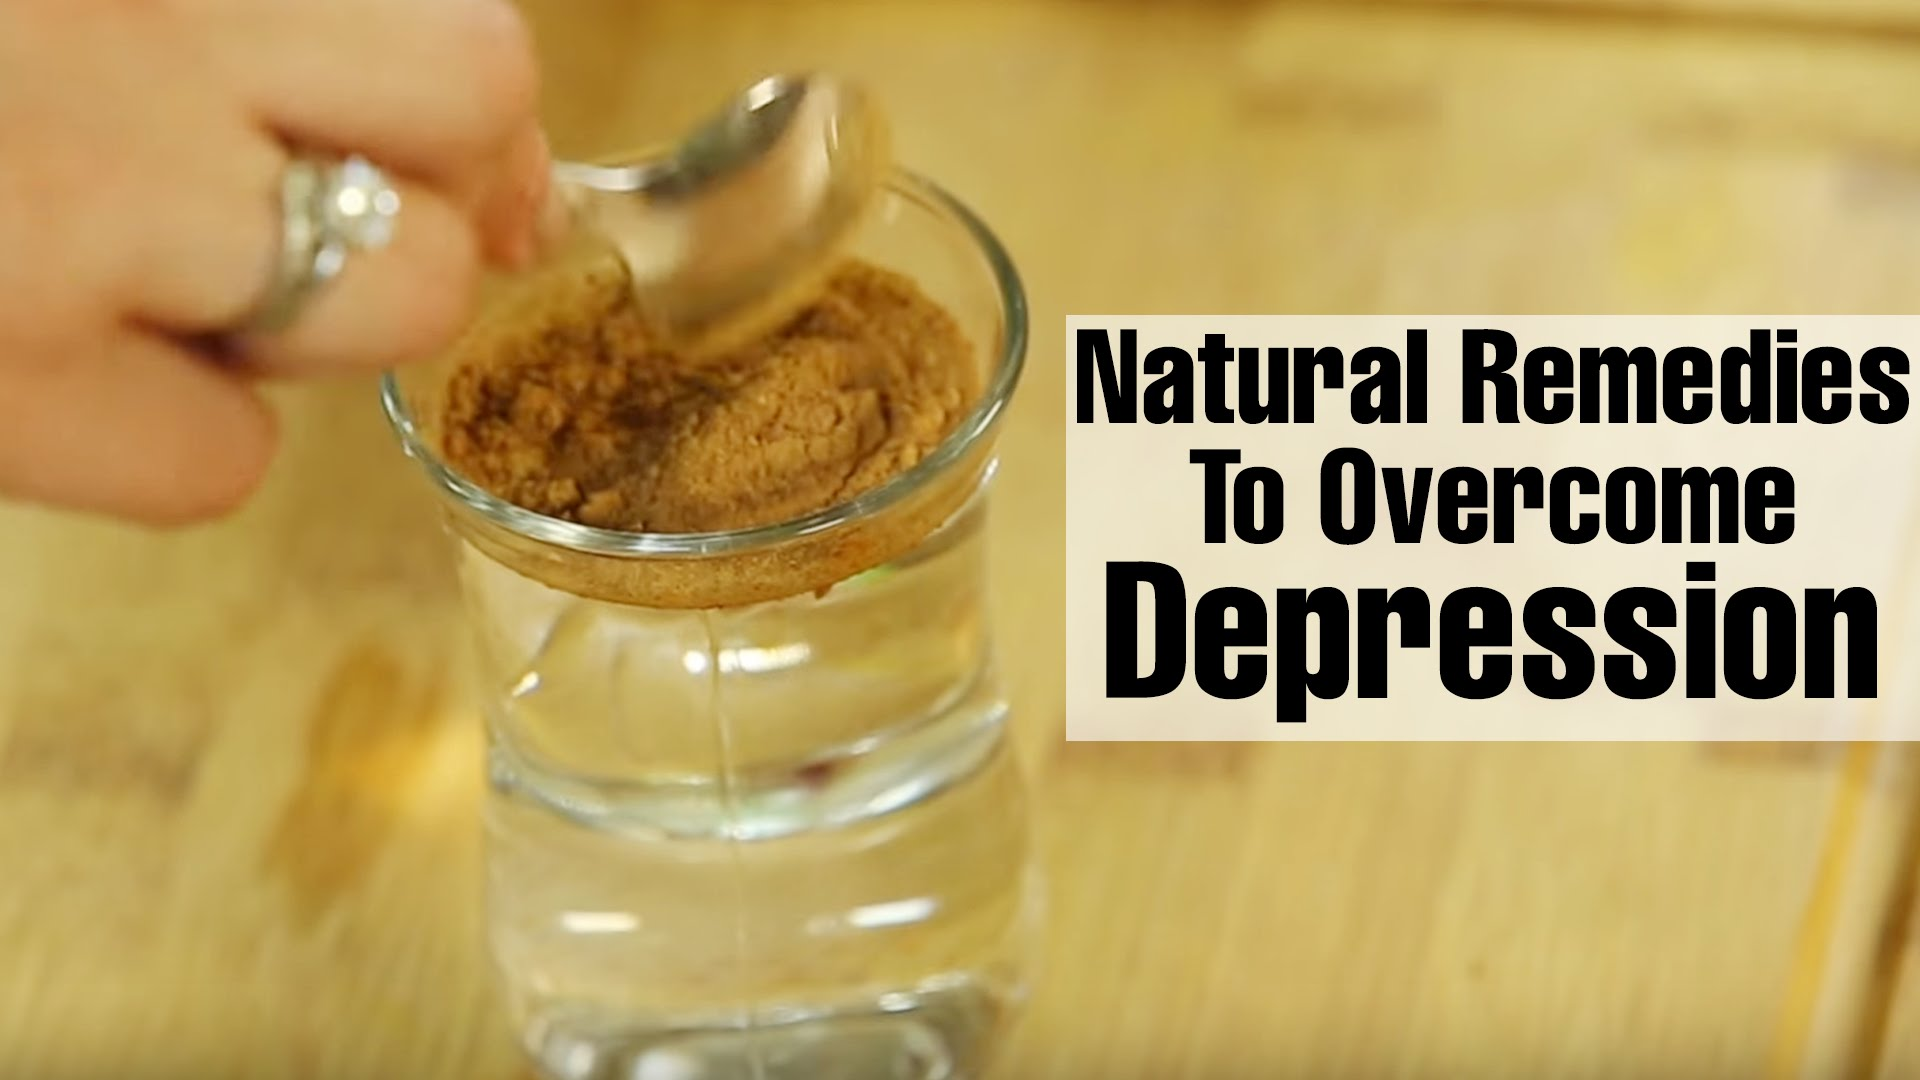 Natural and Herbal Remedies for Depression